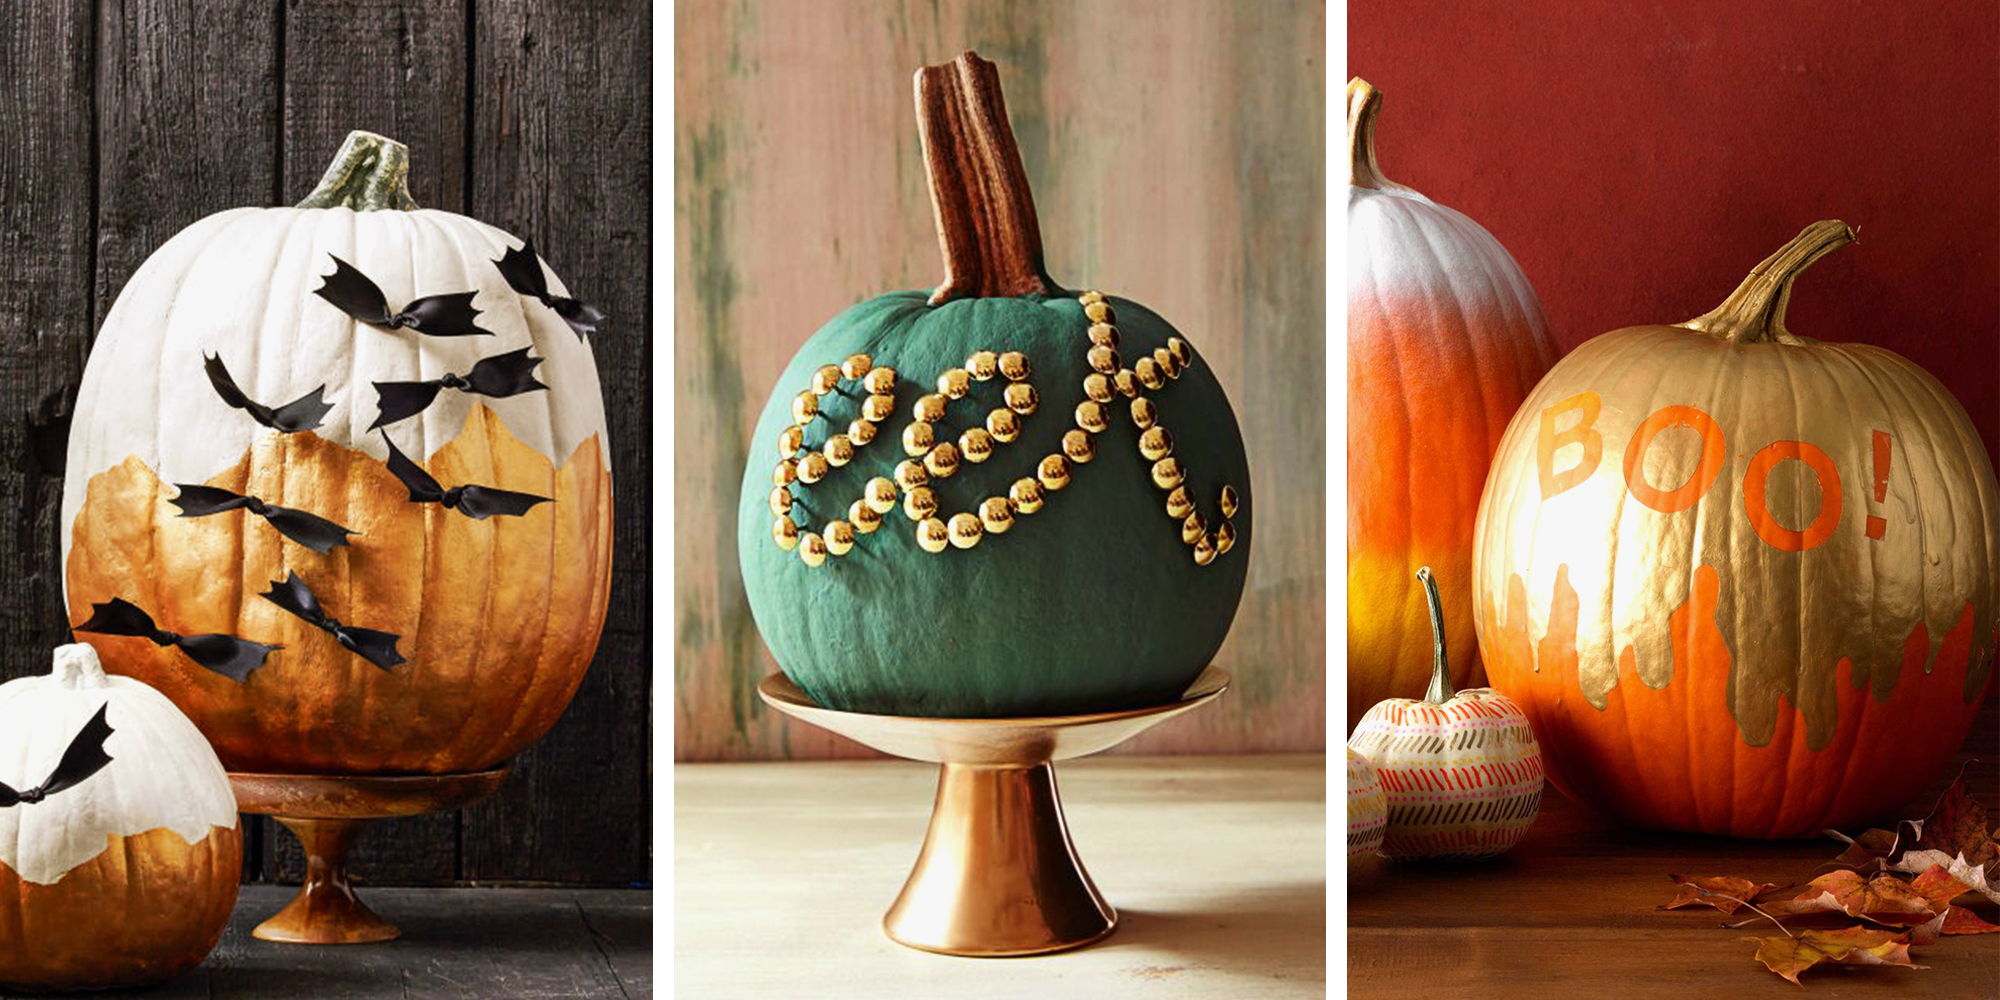 15 Best Pumpkin Decorating Ideas for Halloween 2018 - No ...